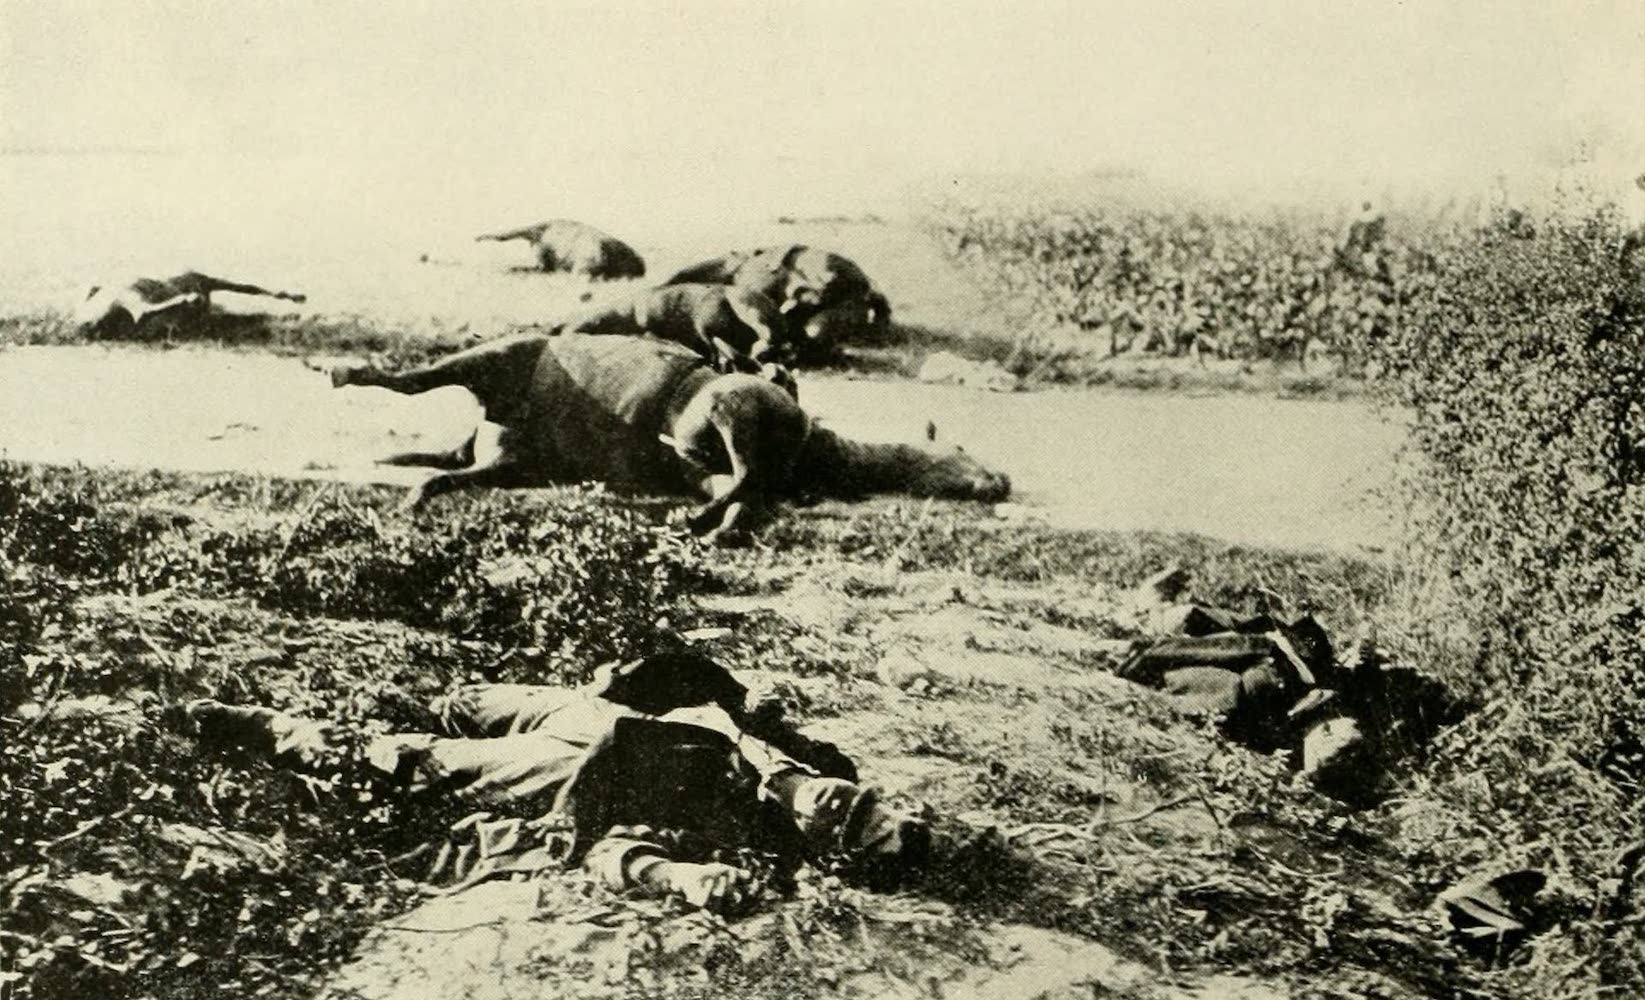 Laird & Lee's World's War Glimpses - After the Battle of Haelen (1914)